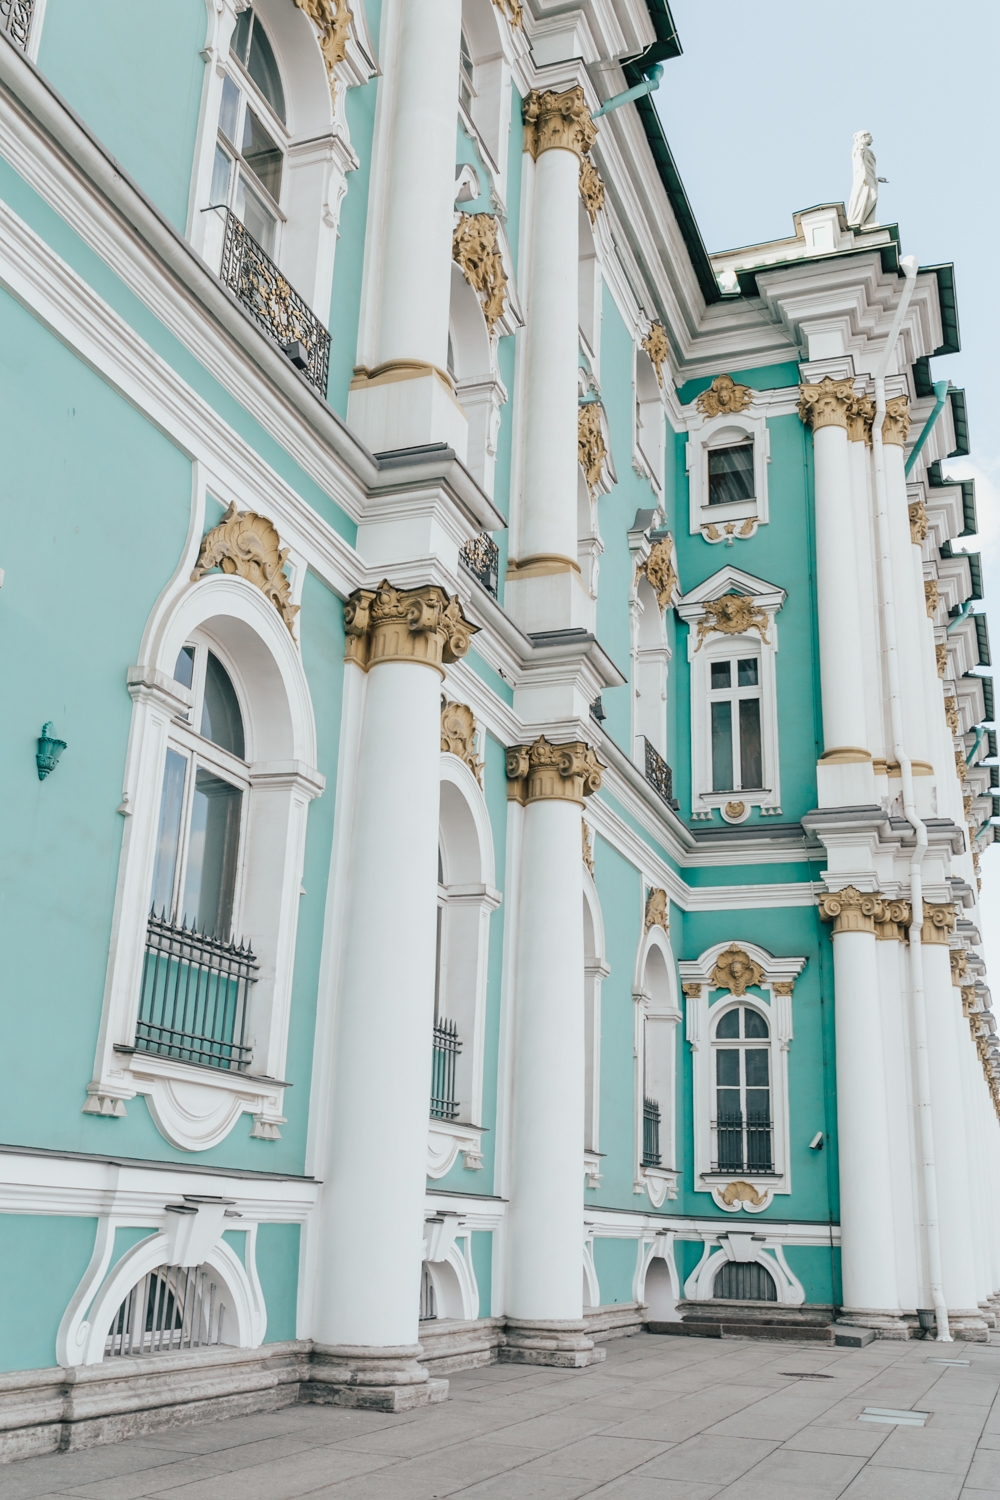 livvyland-blog-olivia-watson-regal-princess-scandinavia-cruise-may-june-itinerary-what-to-wear-pack-ports-russia-saint-petersburg-hermitage-museum-colorful-building